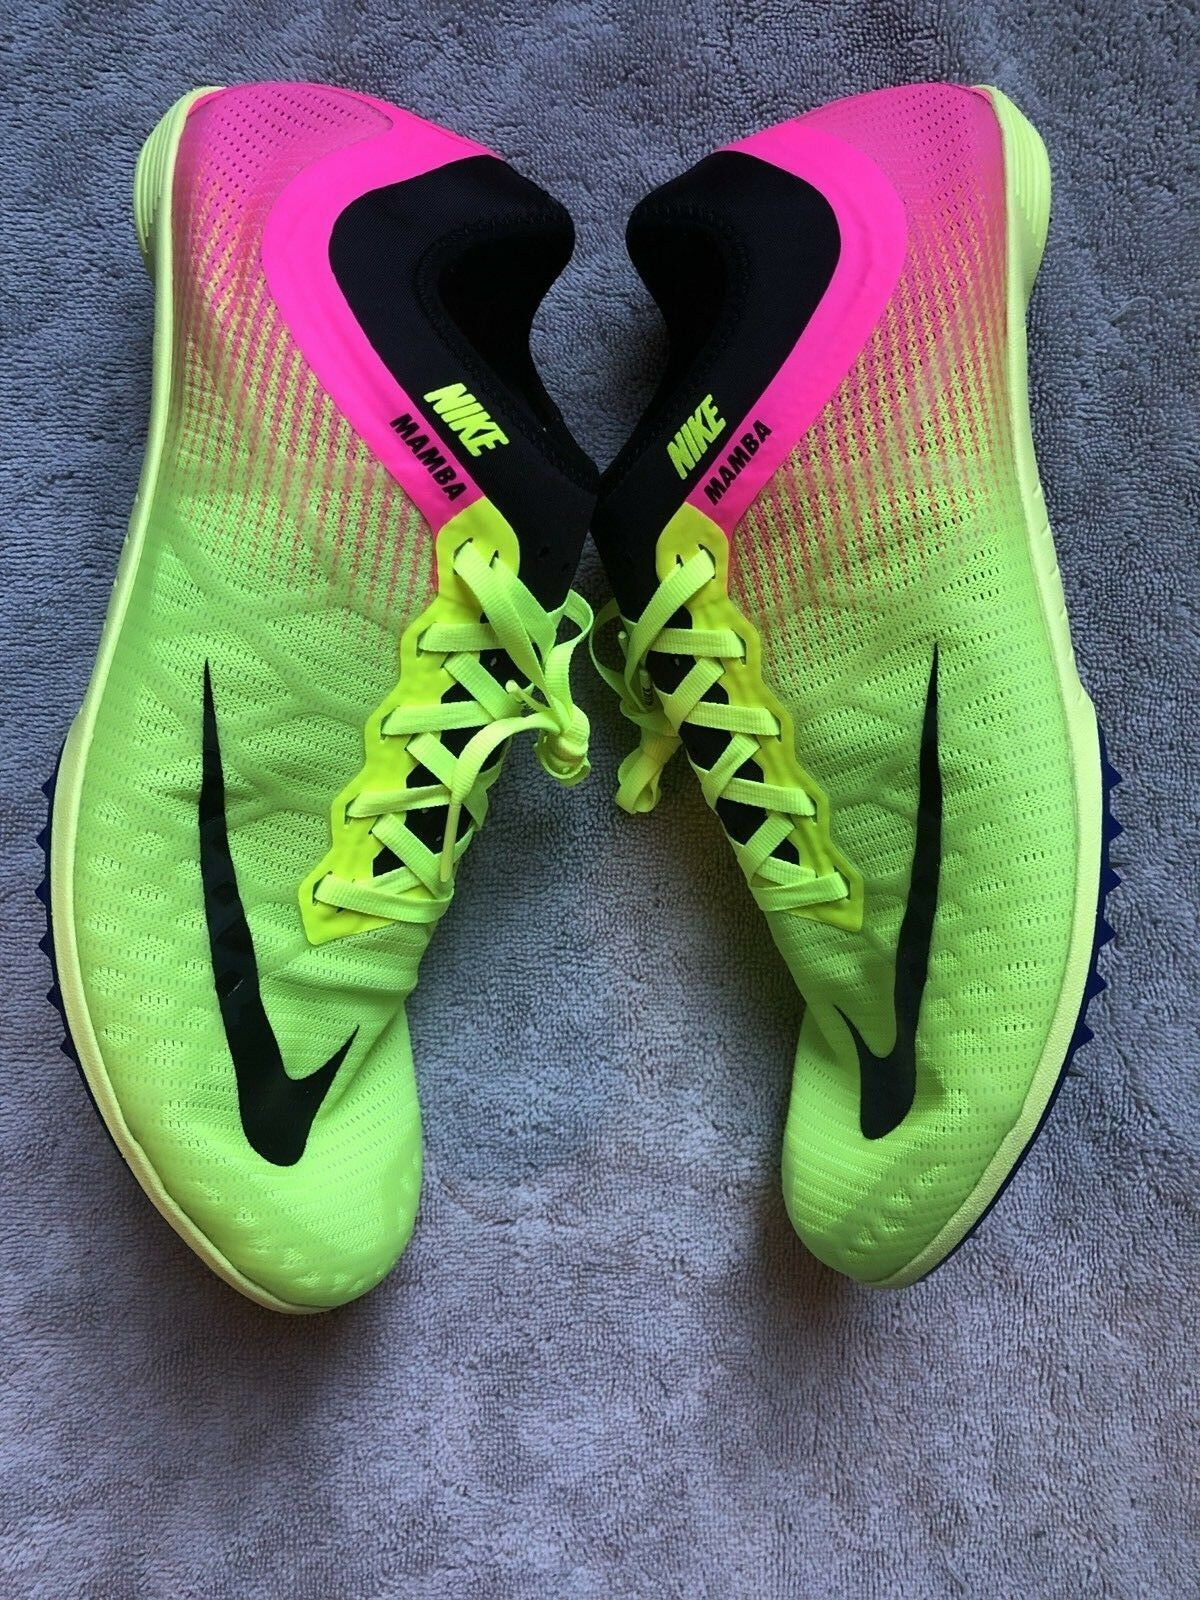 Nike Zoom Mamba 3 Track Field Distance Spikes Size  12 (882015-999)